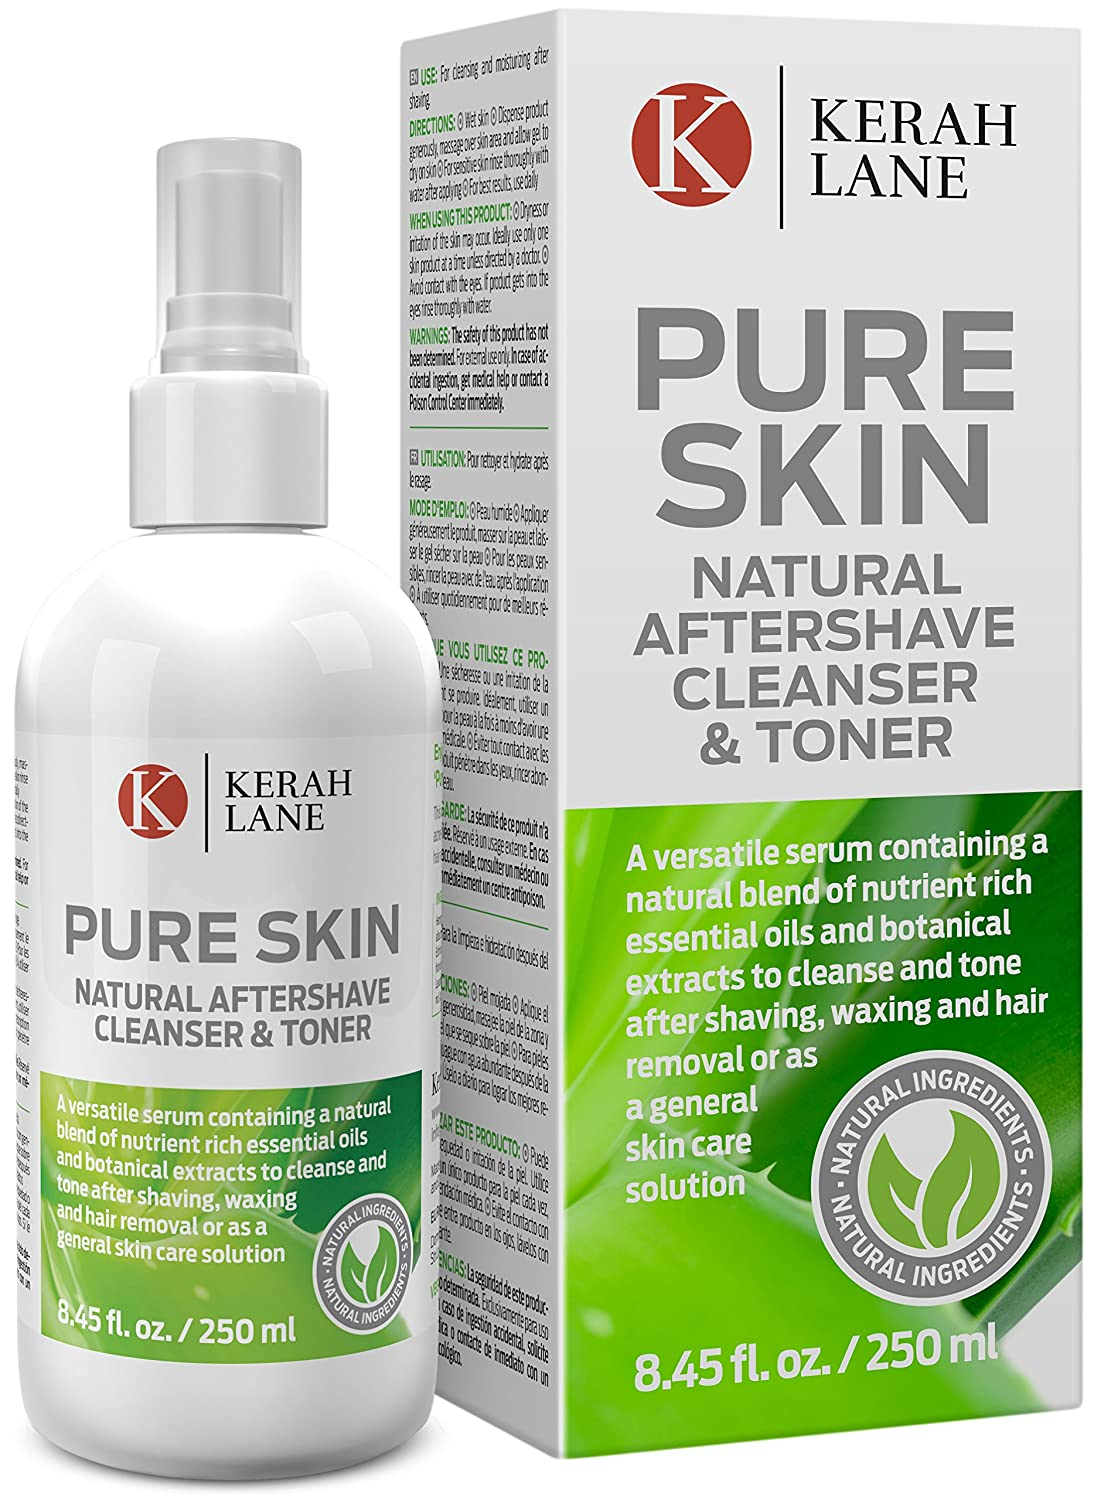 Kerah Lane Pure Skin - Natural Toner & Cleanser for Treatment of Ingrown Hairs, Acne & Razor Bumps. Use After Shaving, Waxing & Hair Removal or as a General Skin Care Solution for Women & Men 8.45oz KLPS1